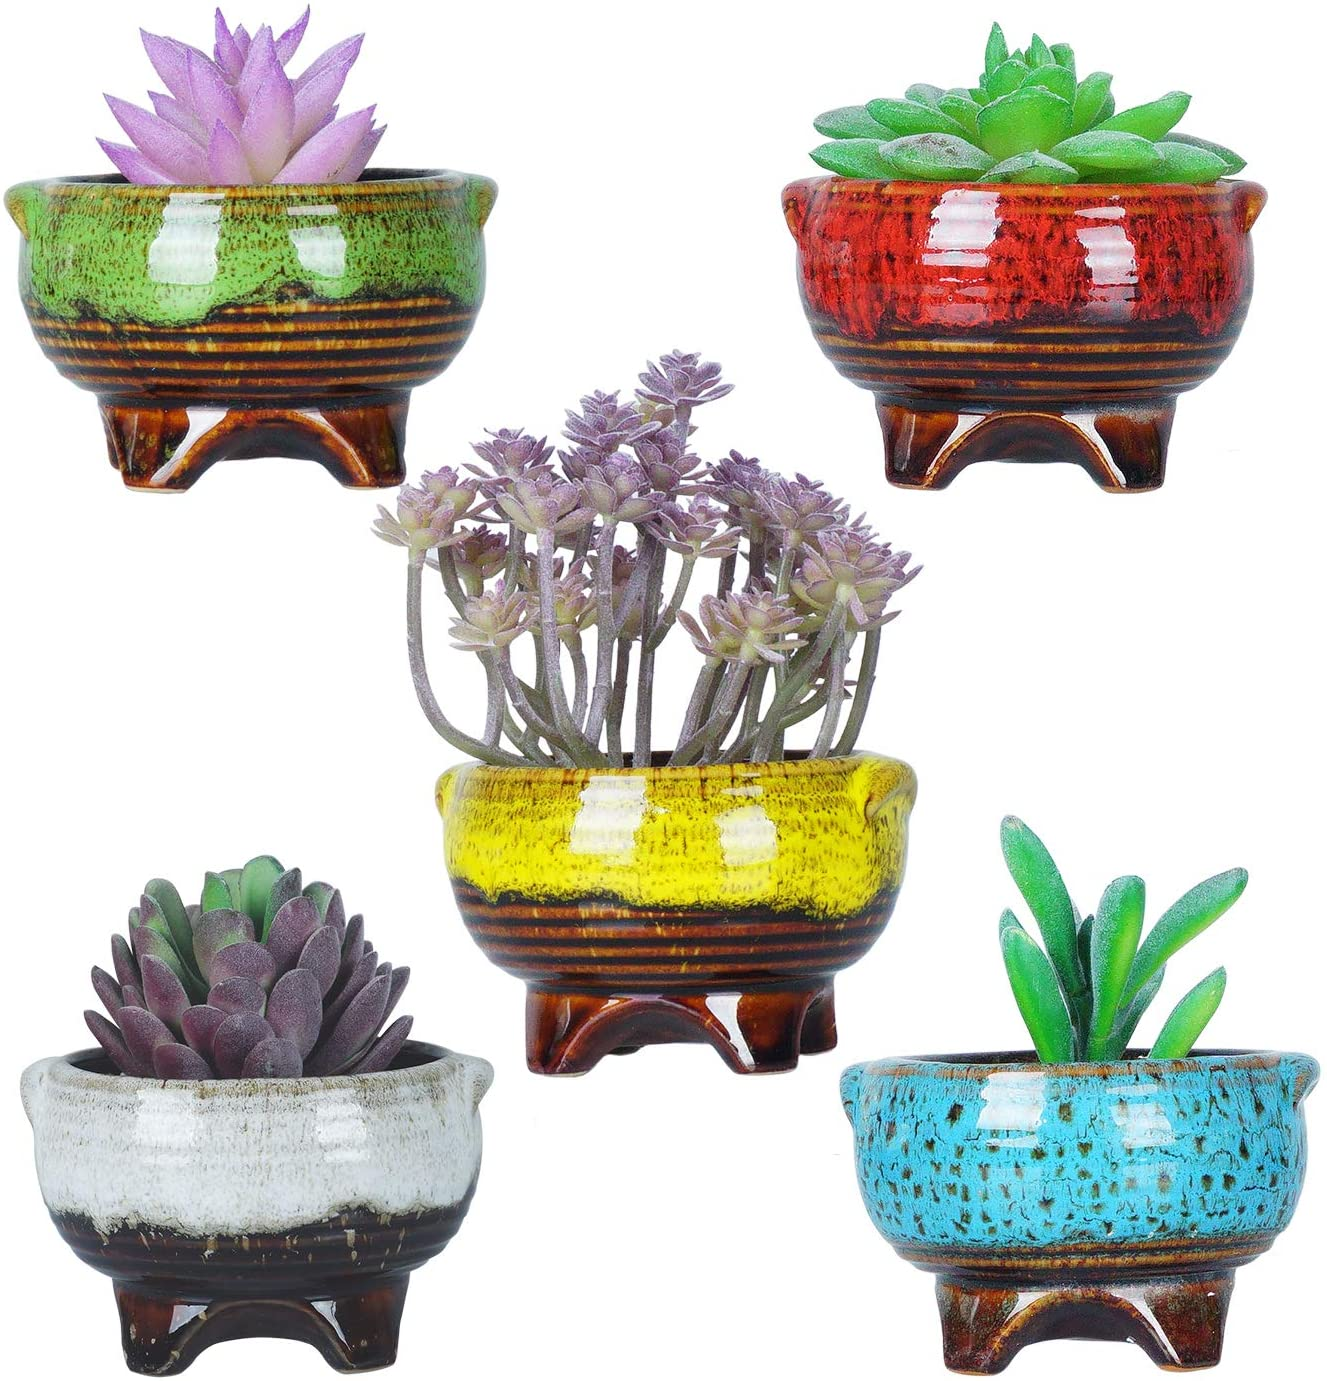 Amazon Com 4 Inch Ceramic Succulent Plant Pots Mini Cactus Planter Pots Tripod Glazed Flower Pots With Drainage Tiny Plant Containers Perfect For Desk Or Windowsill Pack Of 5 Kitchen Dining